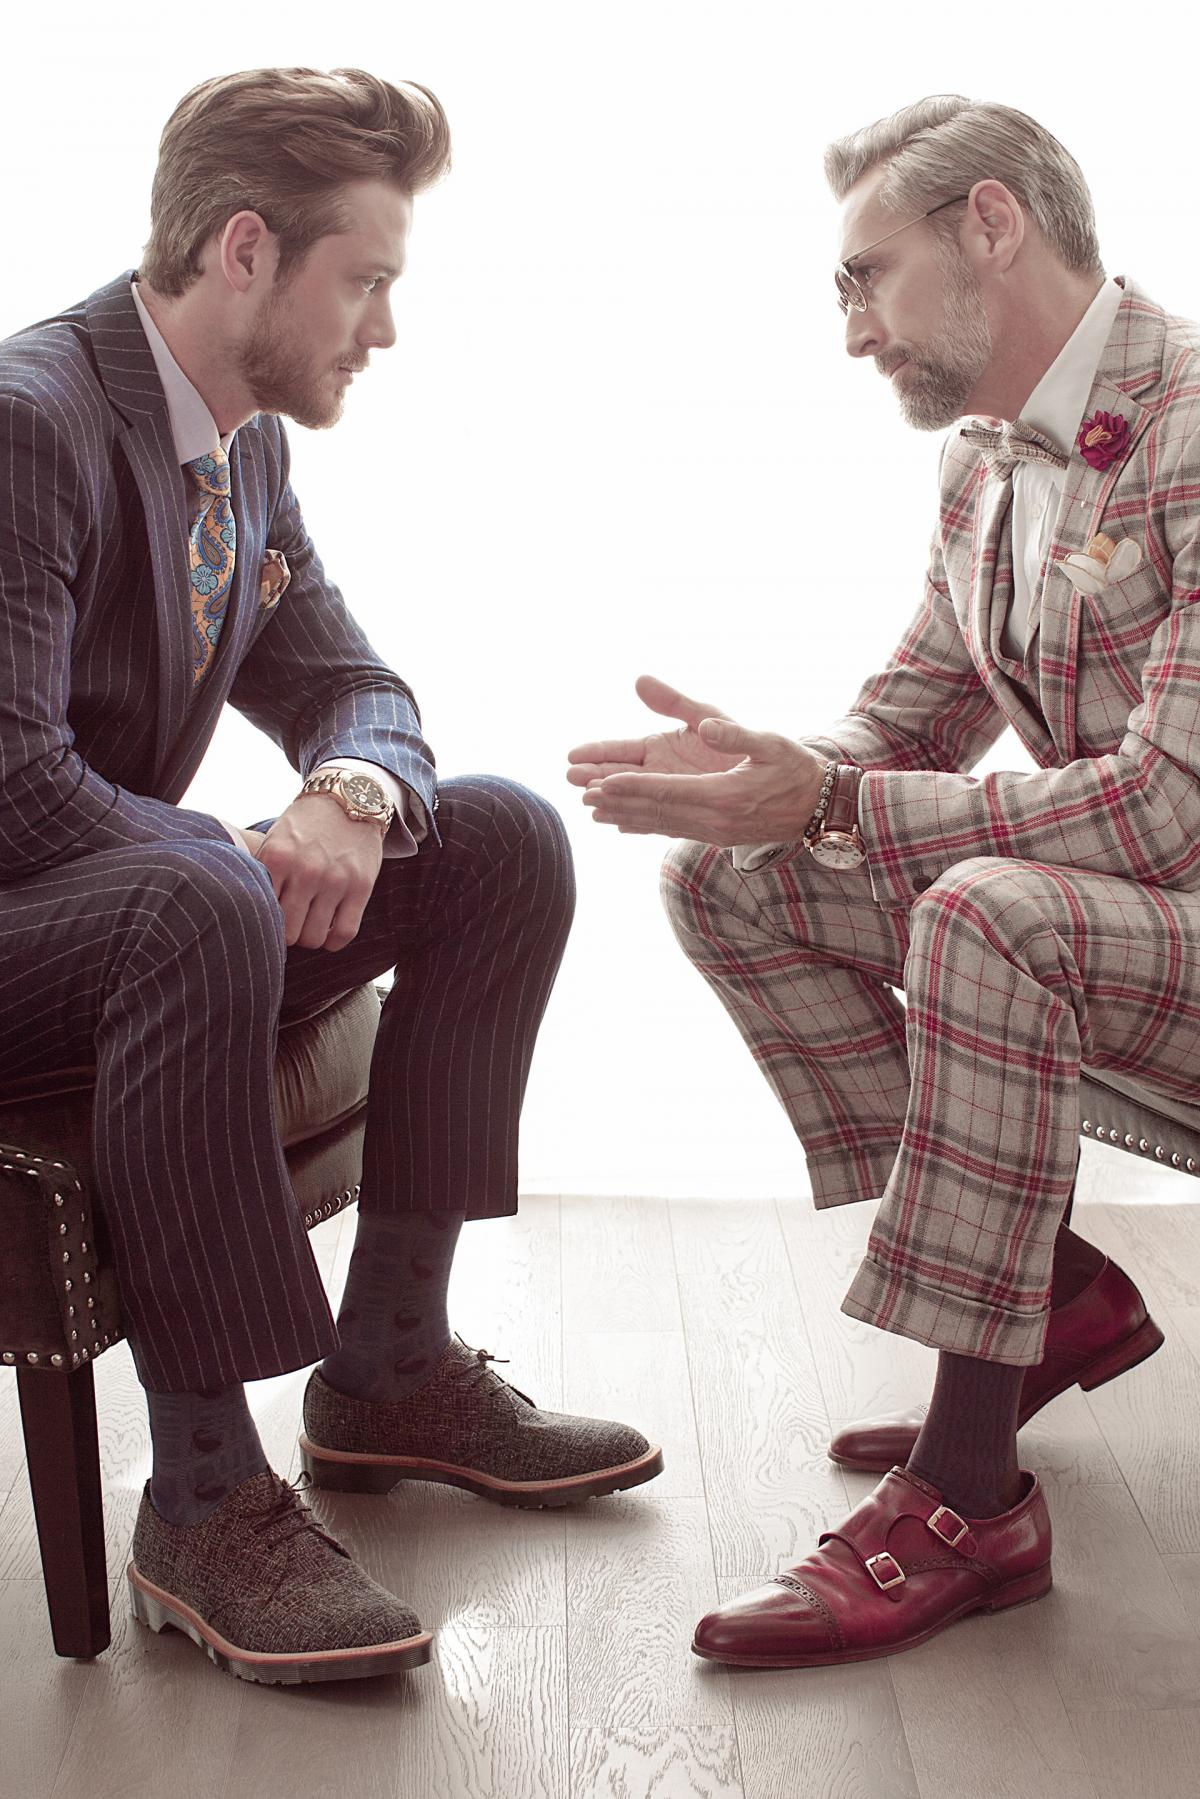 Two perfectly dressed men discuss an important business